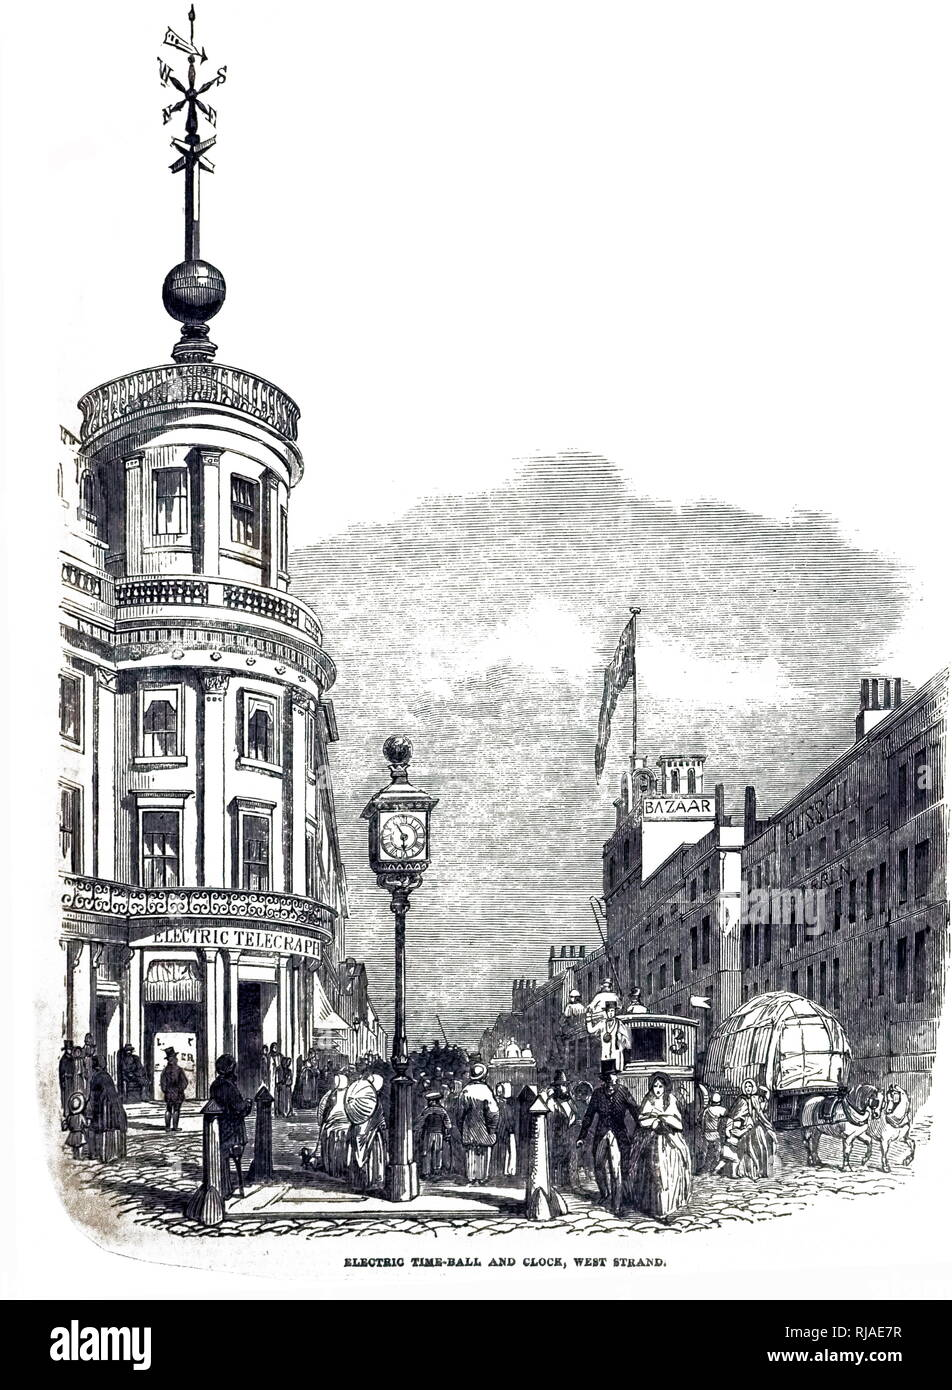 Time Ball at the Royal Observatory office in the Strand, London used for ships to set their chronometers. 1852 - Stock Image